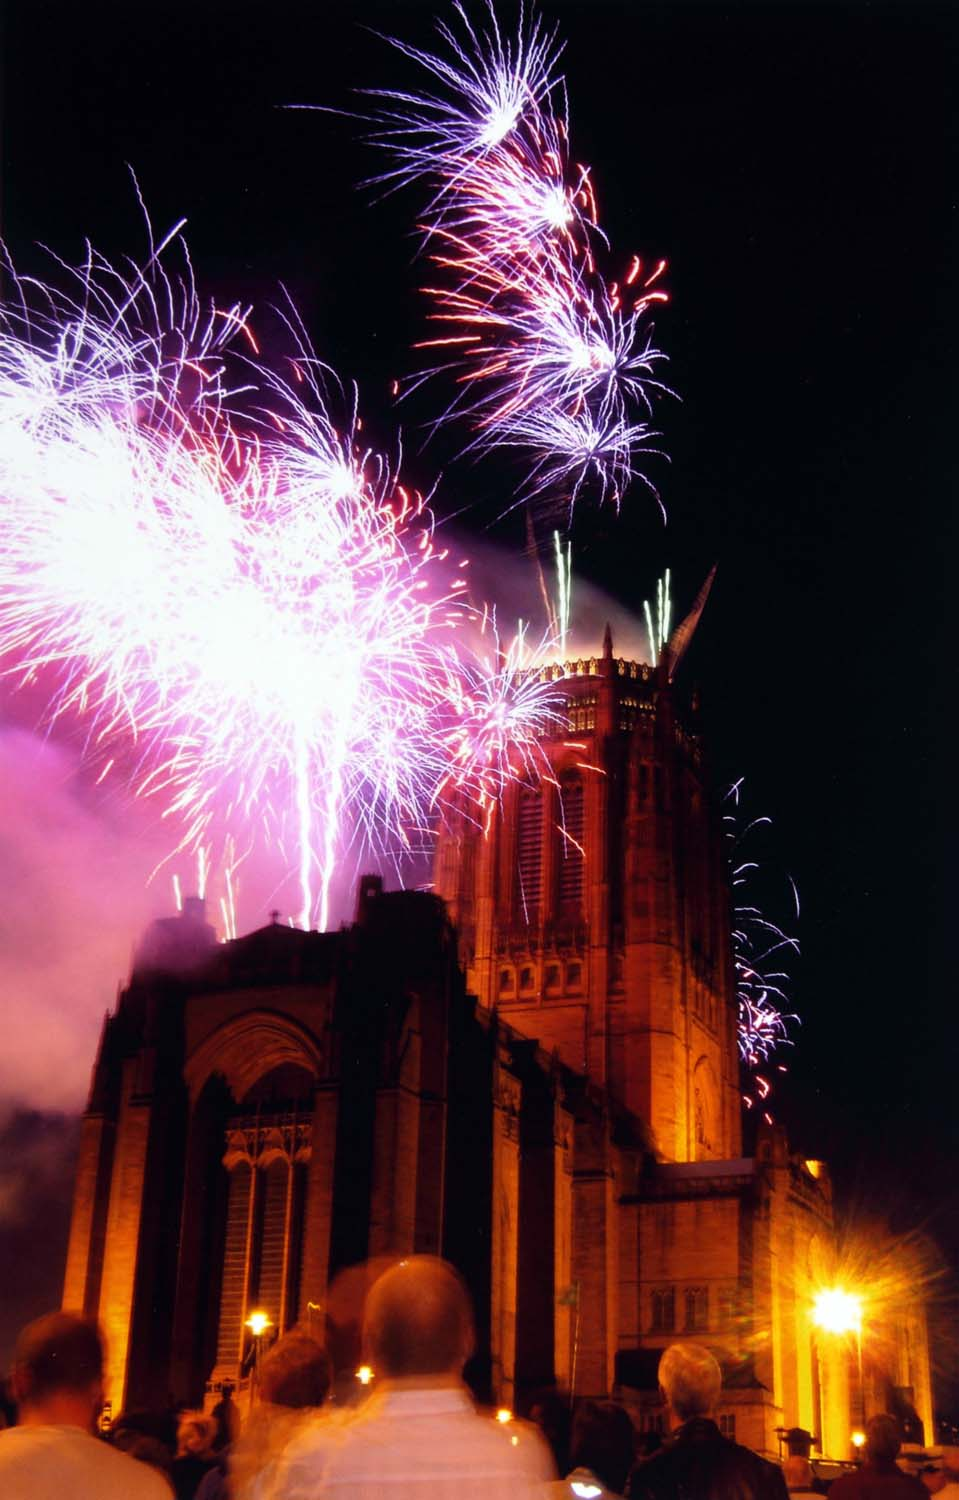 Fireworks,Liverpool,Anglican,Cathedral,firework,dusk,night,time,celebration,UK,England,Britain,north,west,tripod,shot,tripod shot,long,exposure,long exposure,this photo rocks,city,town,hotpics,hotpic,hotpick,hotpicks,merseyside,hotpix!